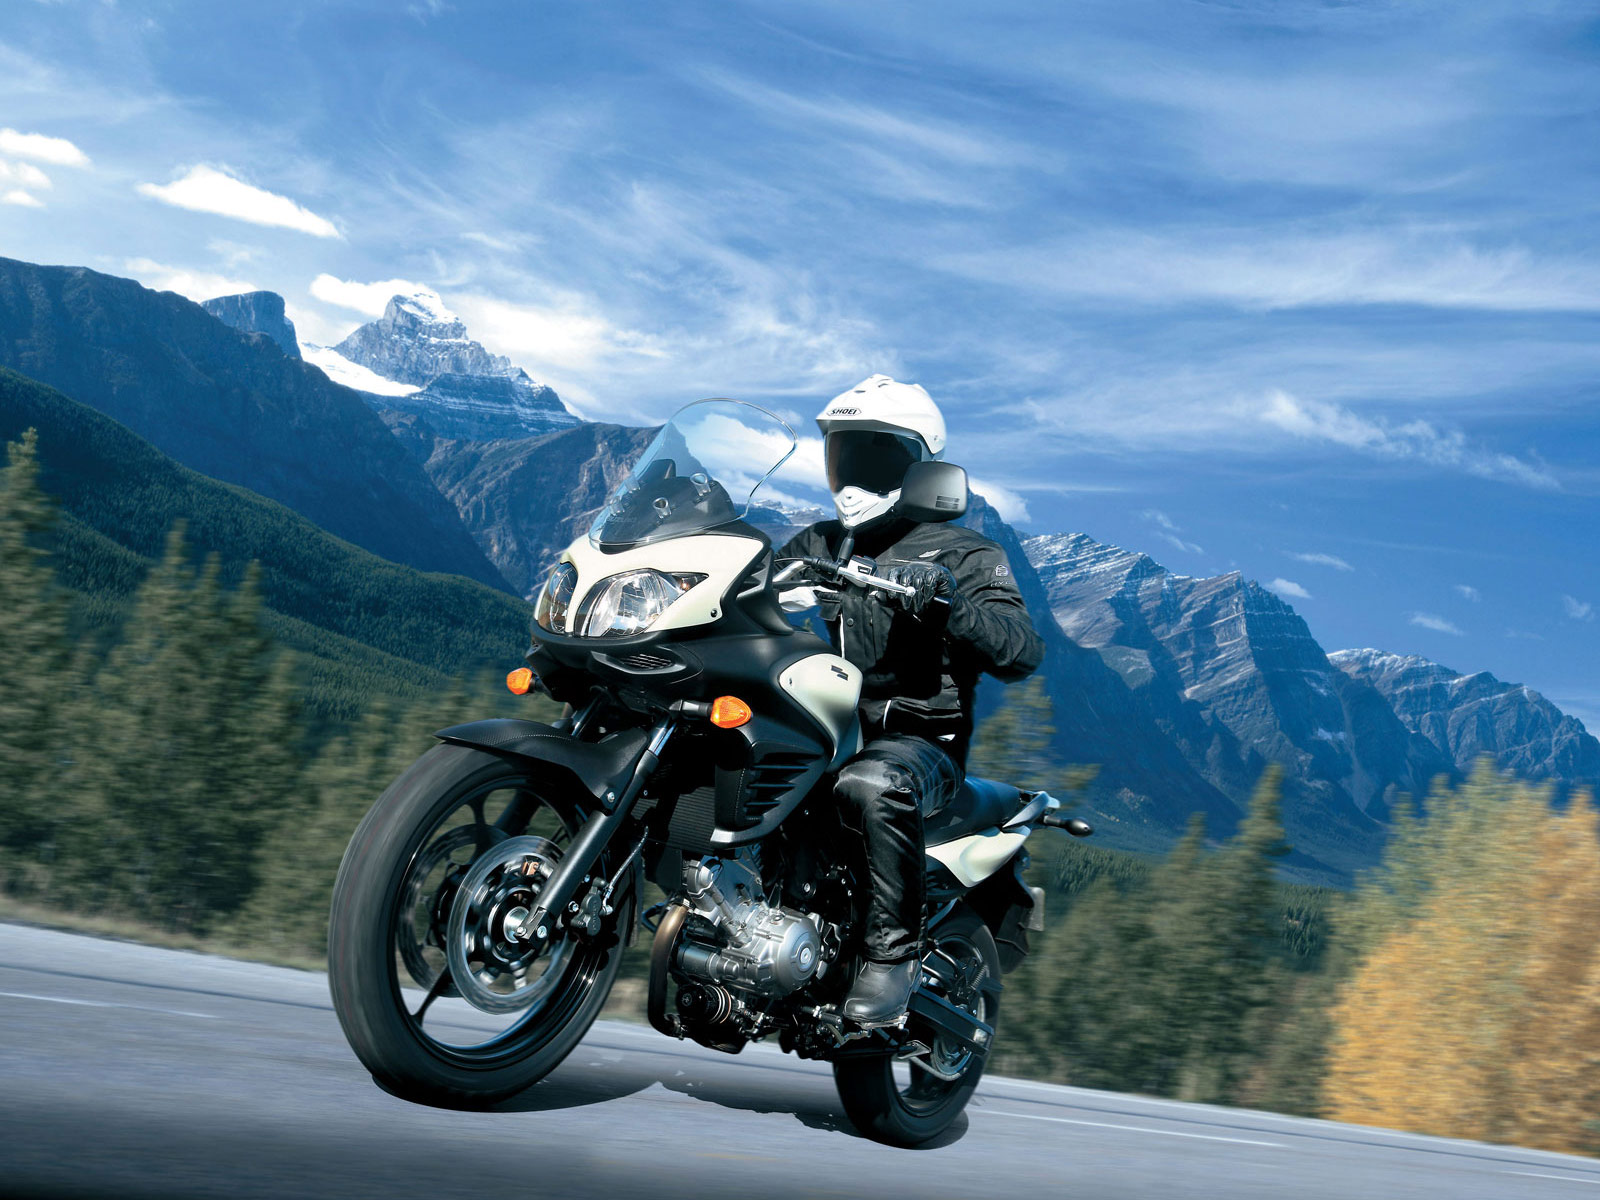 2012 suzuki v strom 650 abs motorcycle wallpaper. Black Bedroom Furniture Sets. Home Design Ideas